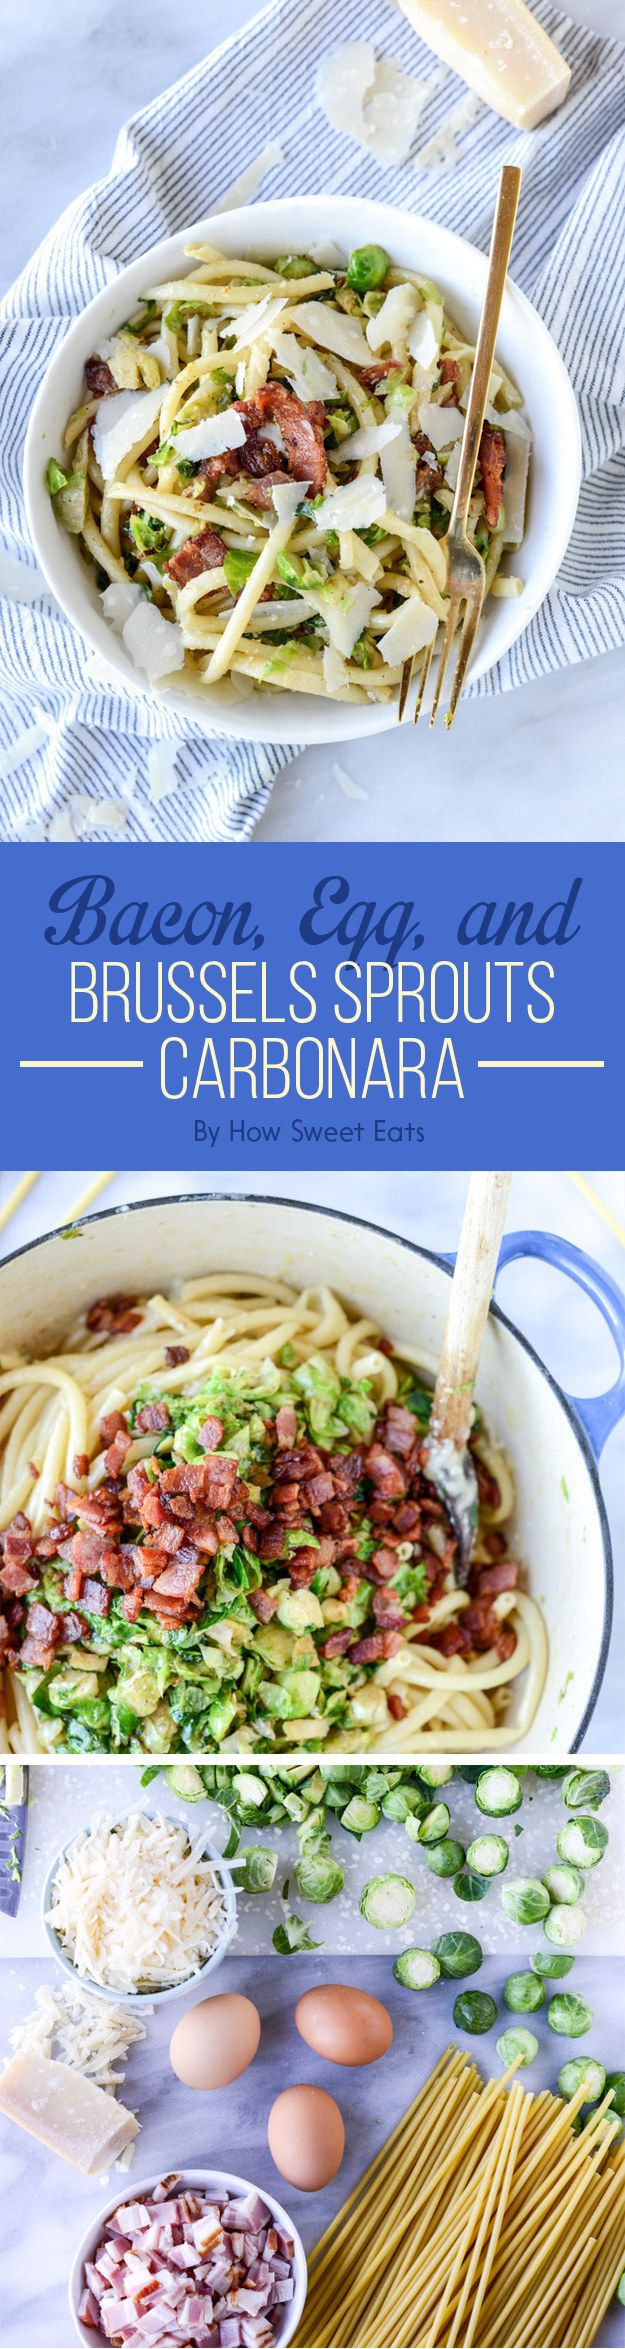 Bacon, Egg, and Brussels Sprouts Carbonara | Here's What You Should Eat For Dinner This Week